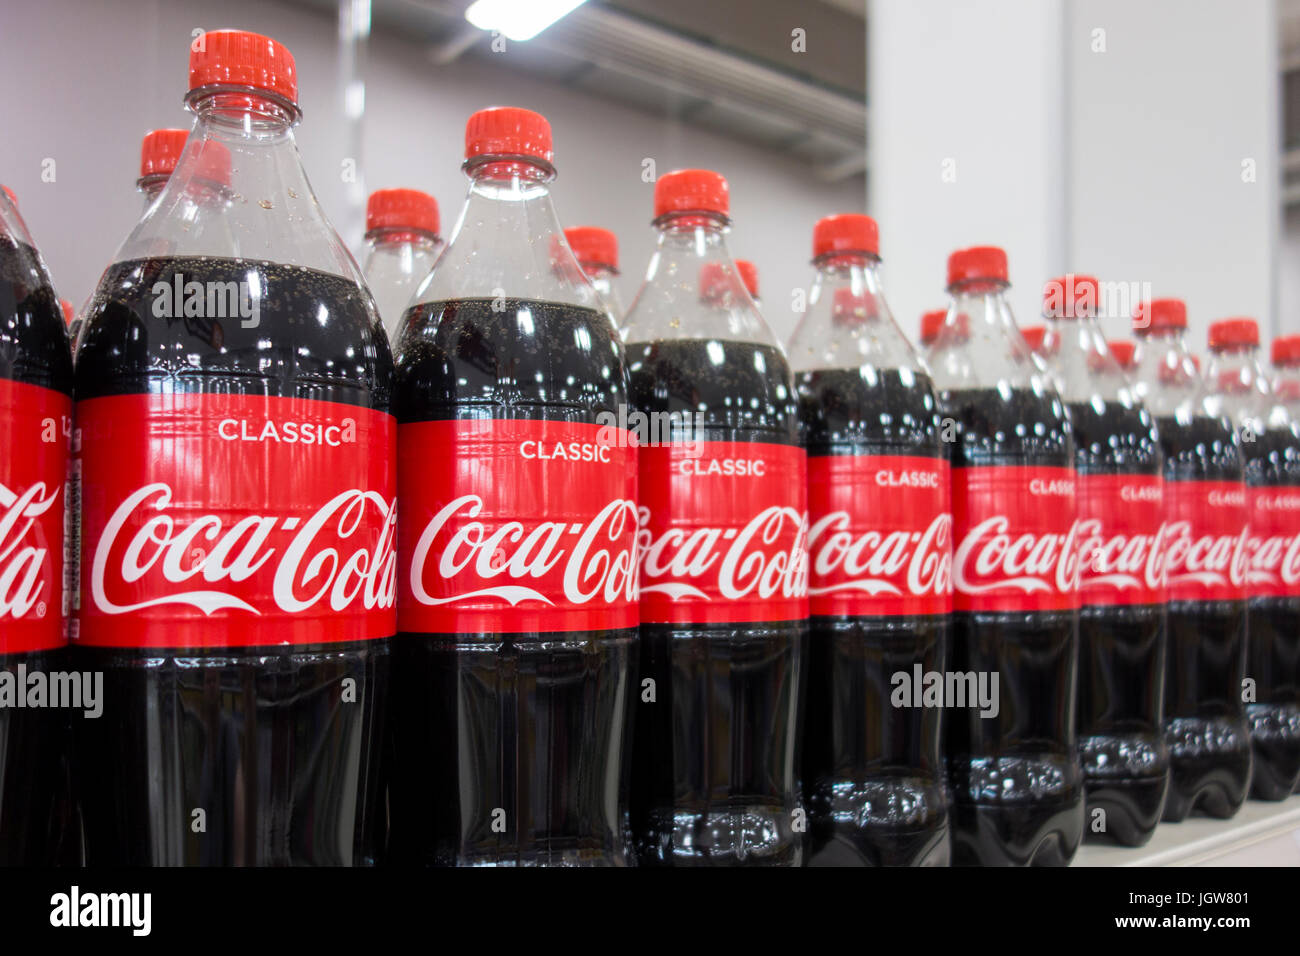 Bottles of Coca Cola / Coke for sale on a supermarket shelf in the UK - Stock Image